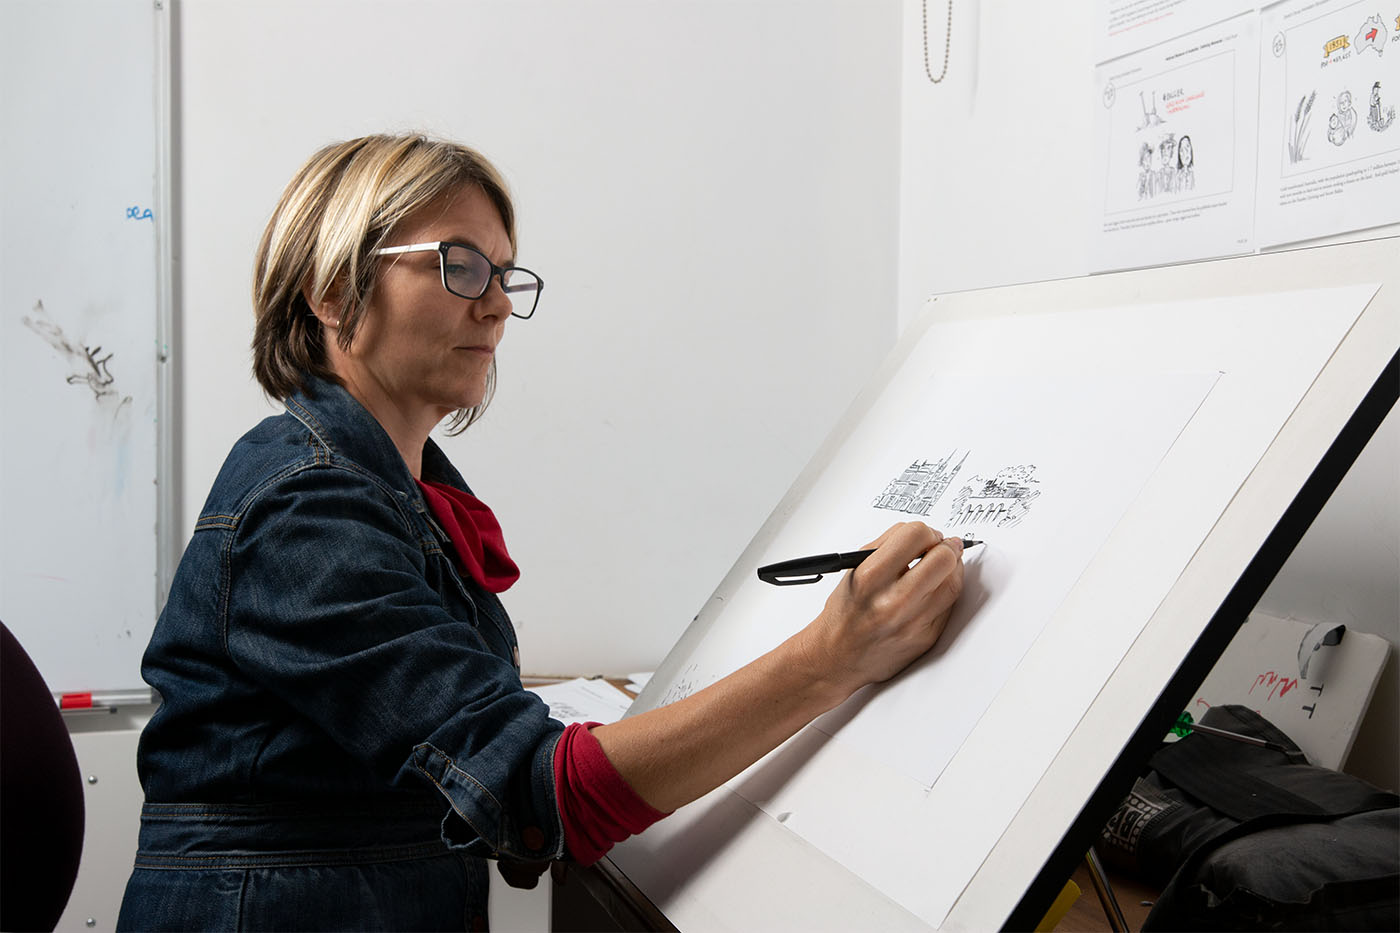 Side view of a woman seated before a large easel, sketching a cityscape on white paper in black pen. - click to view larger image